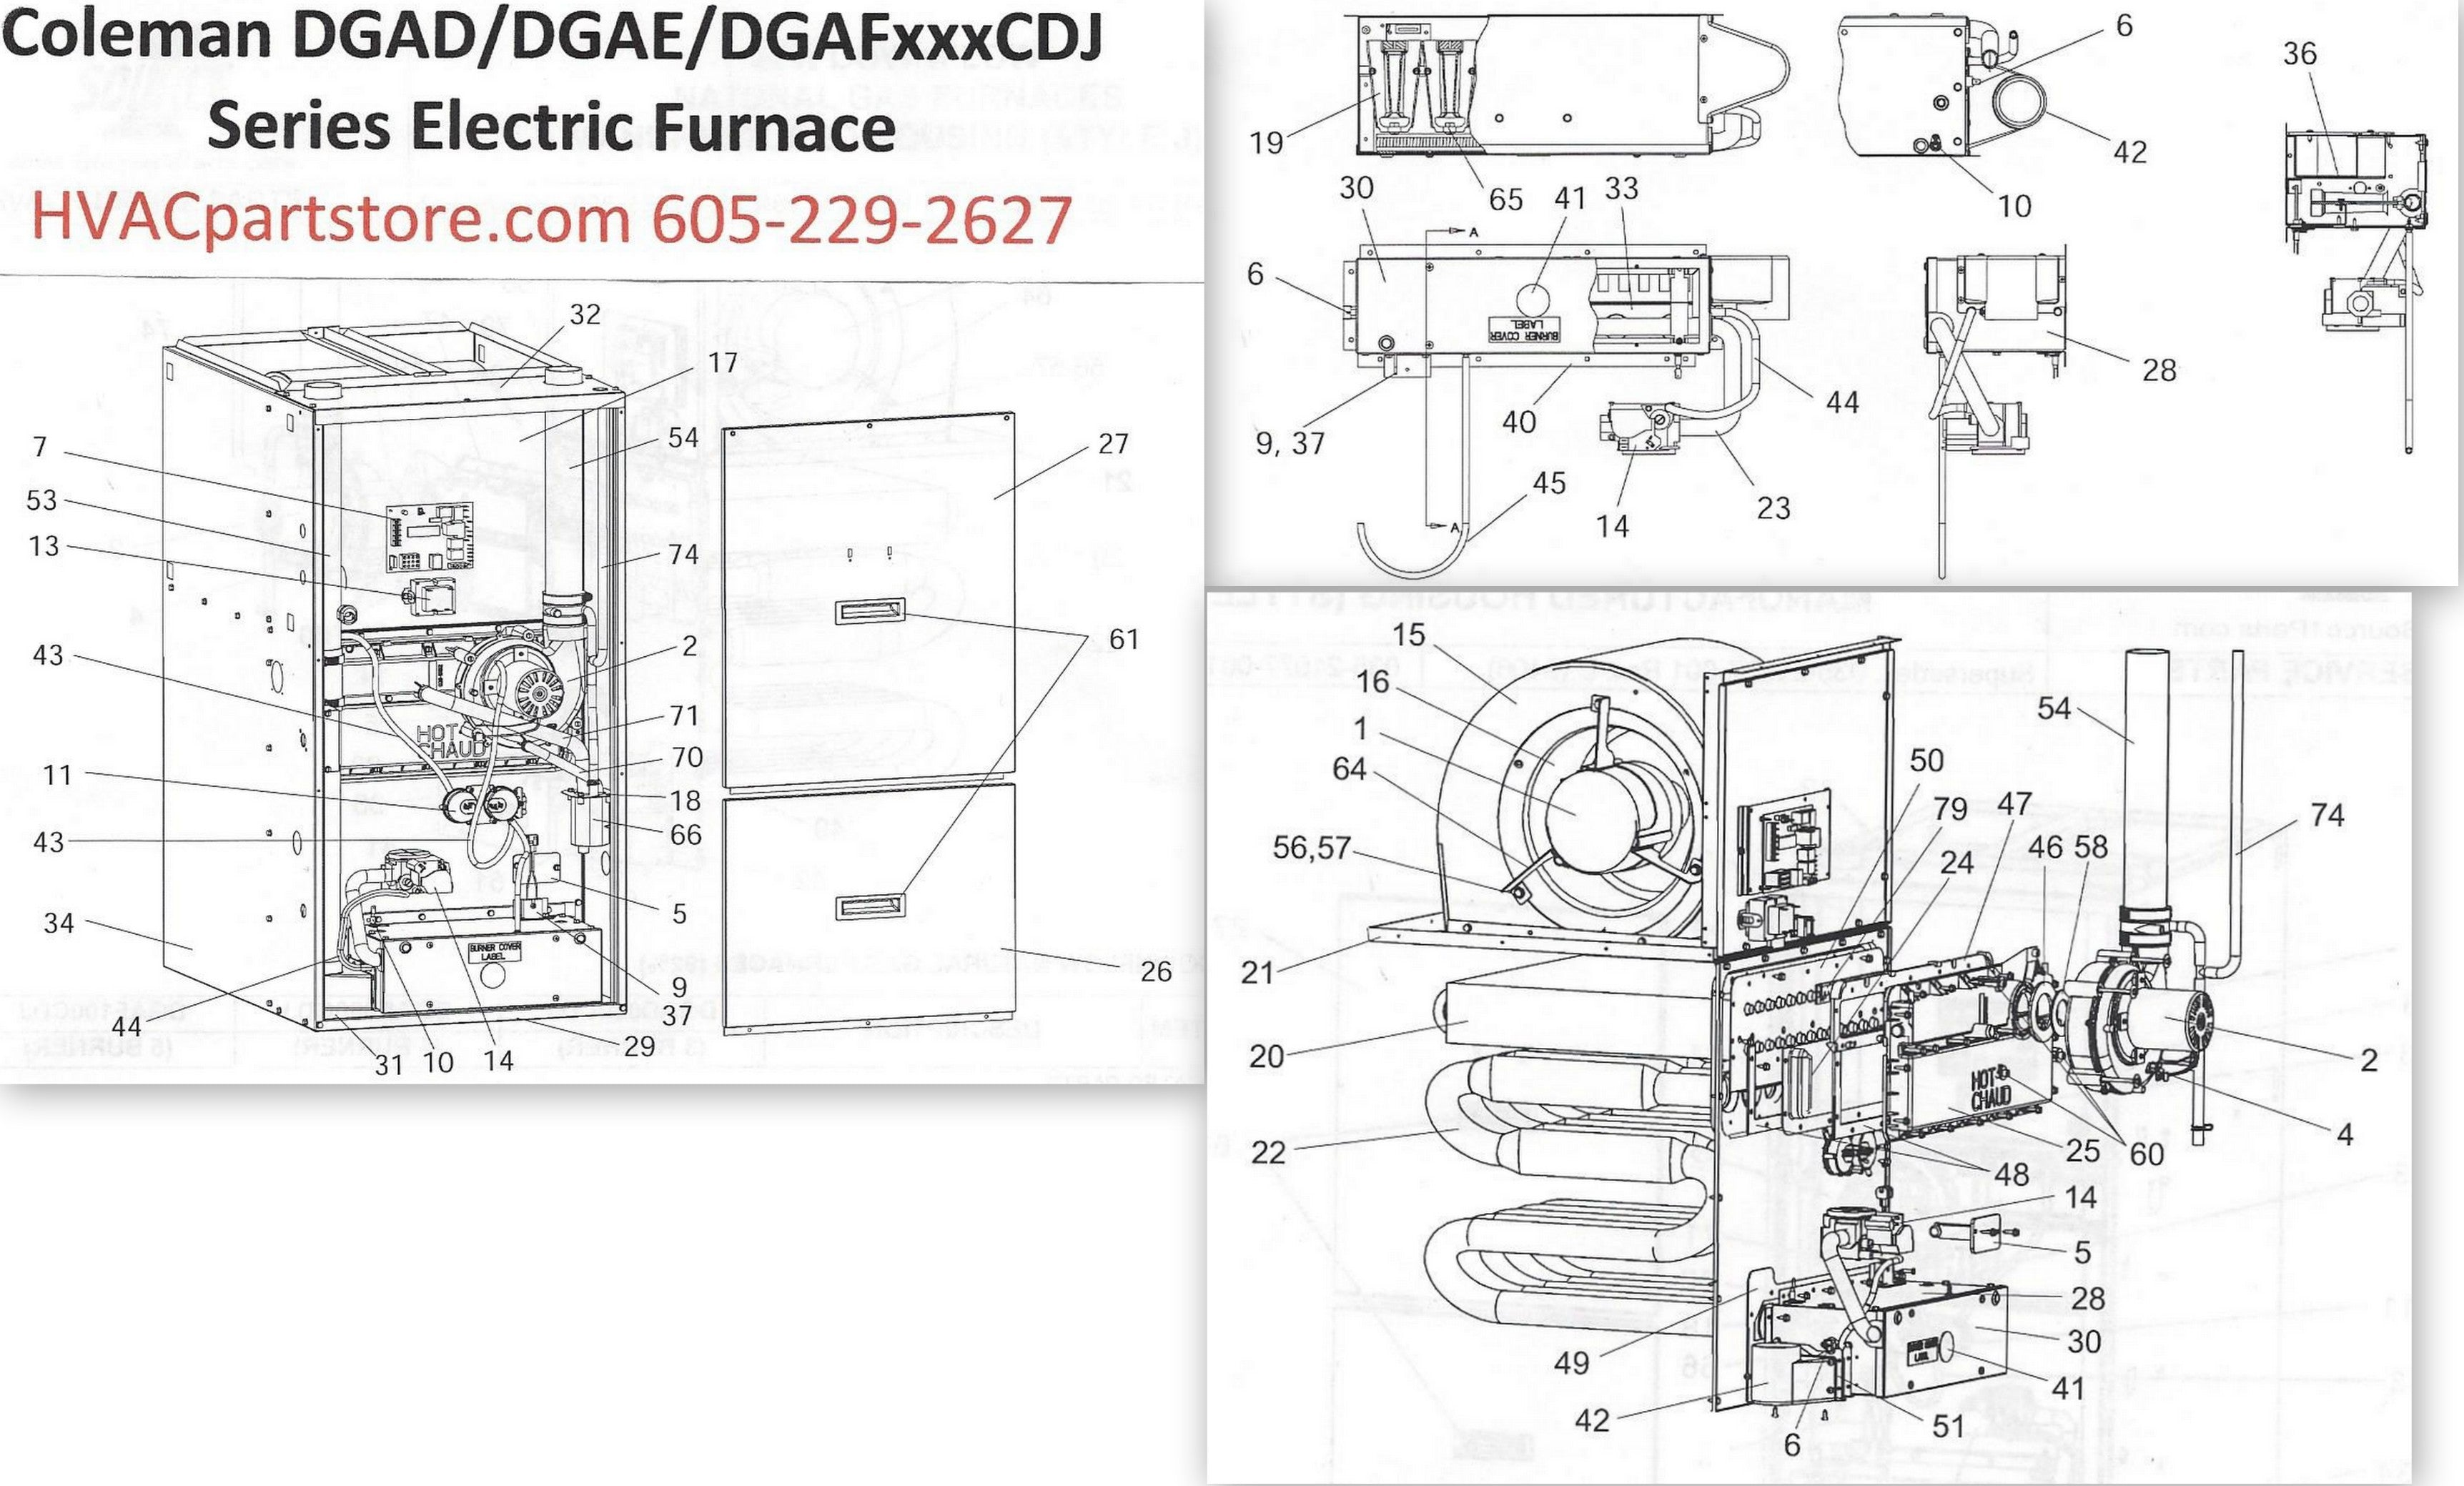 coleman mobile home gas furnace wiring diagram dgae080cdj coleman gas furnace parts – hvacpartstore #11